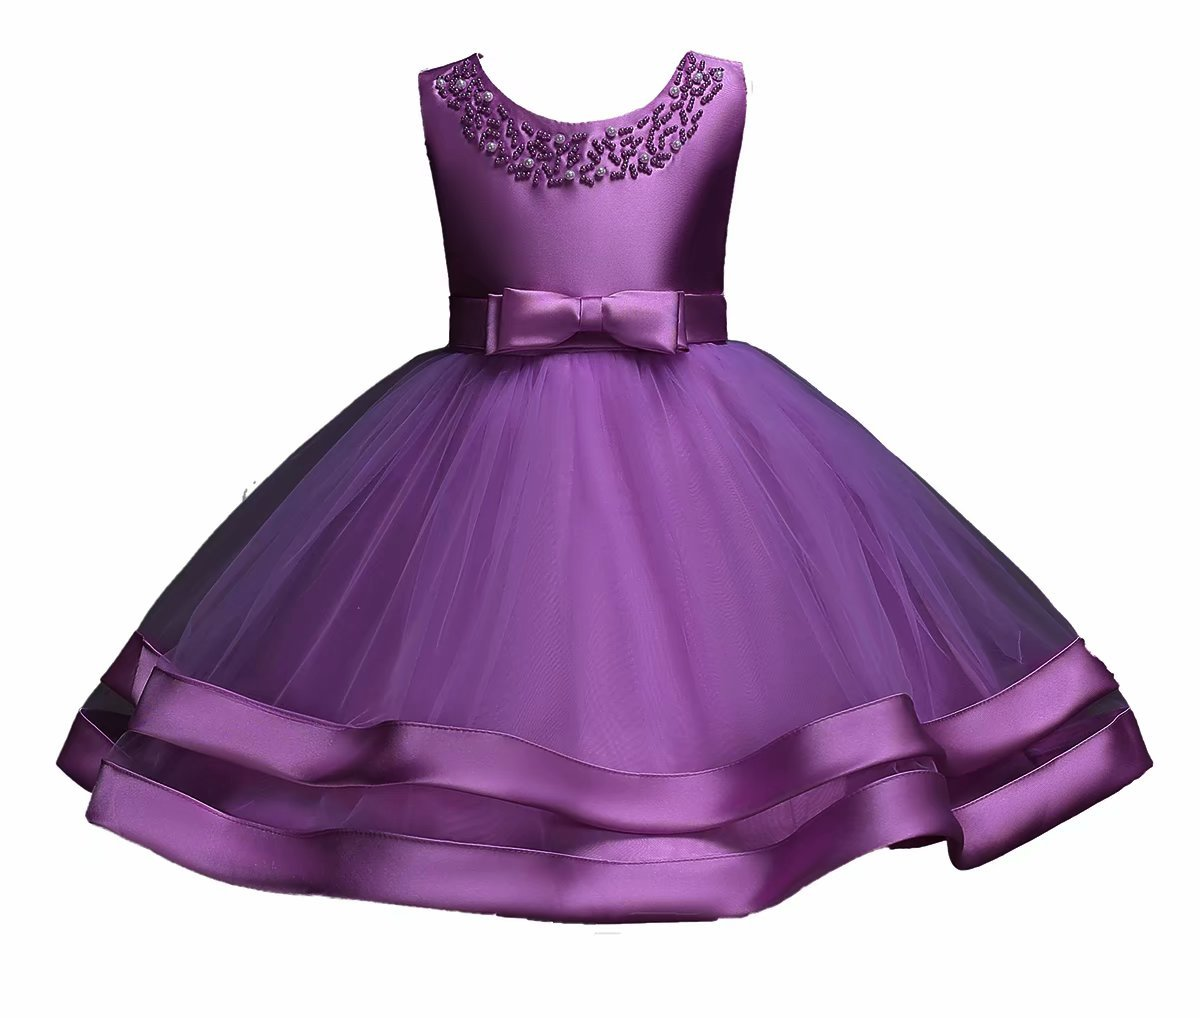 AYOMIS Girls Lace Bridesmaid Dress Wedding Pageant Dresses Tulle Party Gown Age 4-7Y(Deep Purple,3-6M)